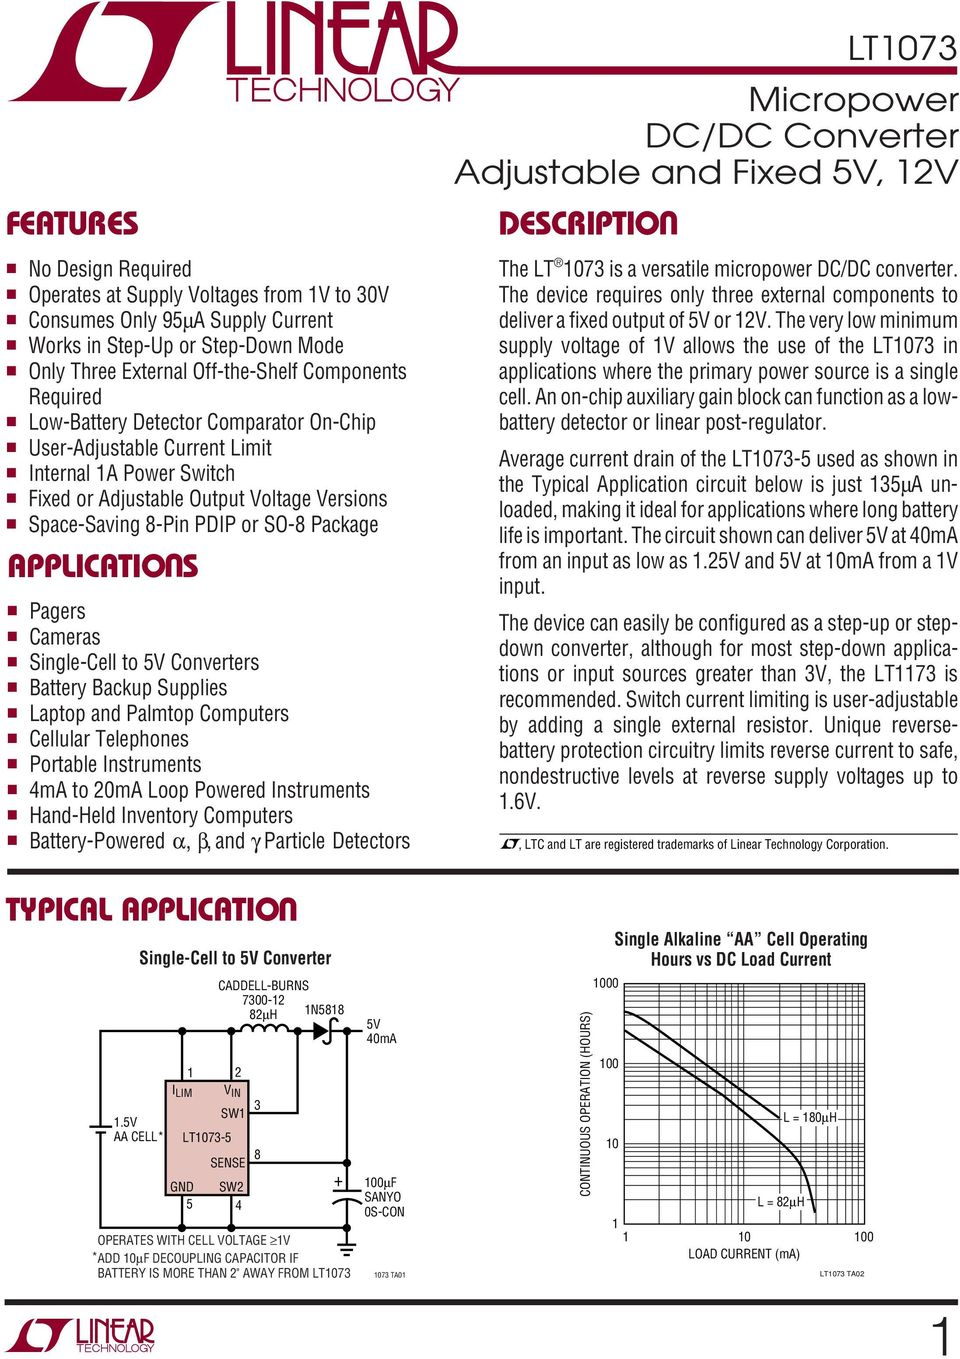 Micropower DC/DC Converter Adjustable and Fixed 5V, 12V DESCRIPTIO The LT 1073 is a versatile micropower DC/DC converter.